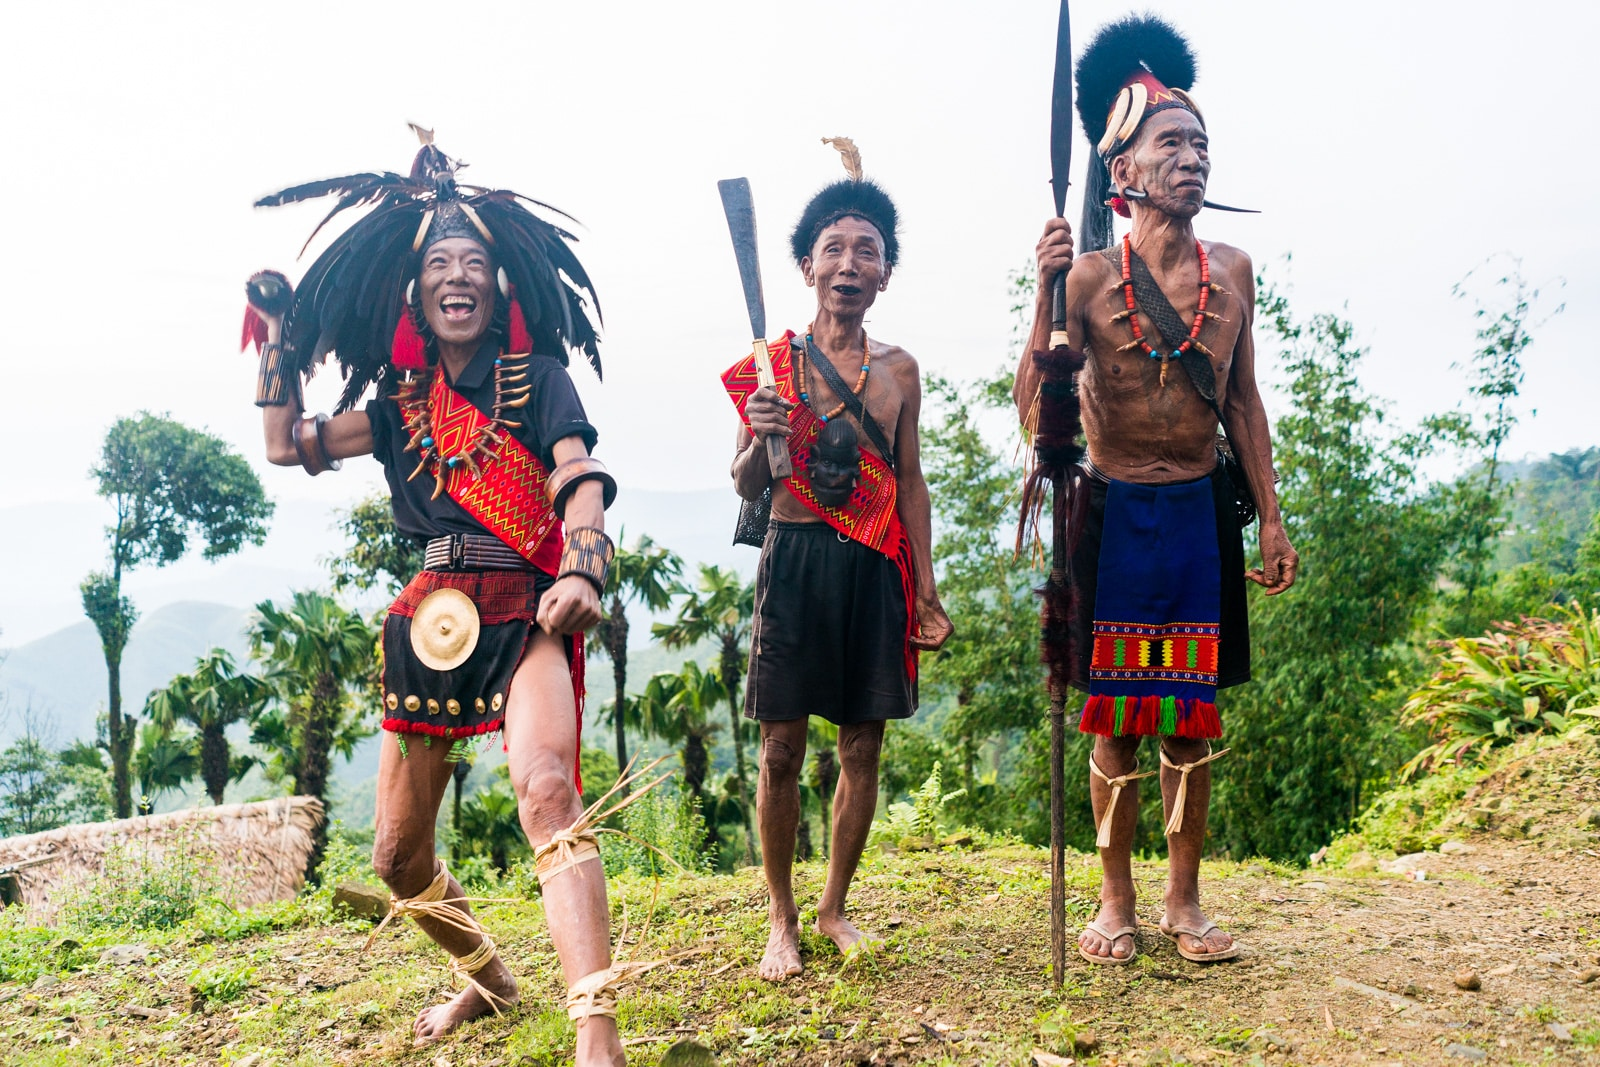 Opium and Jesus and headhunting in Longwa Village, Nagaland, India - Local men in headhunter warrior gear - Lost With Purpose